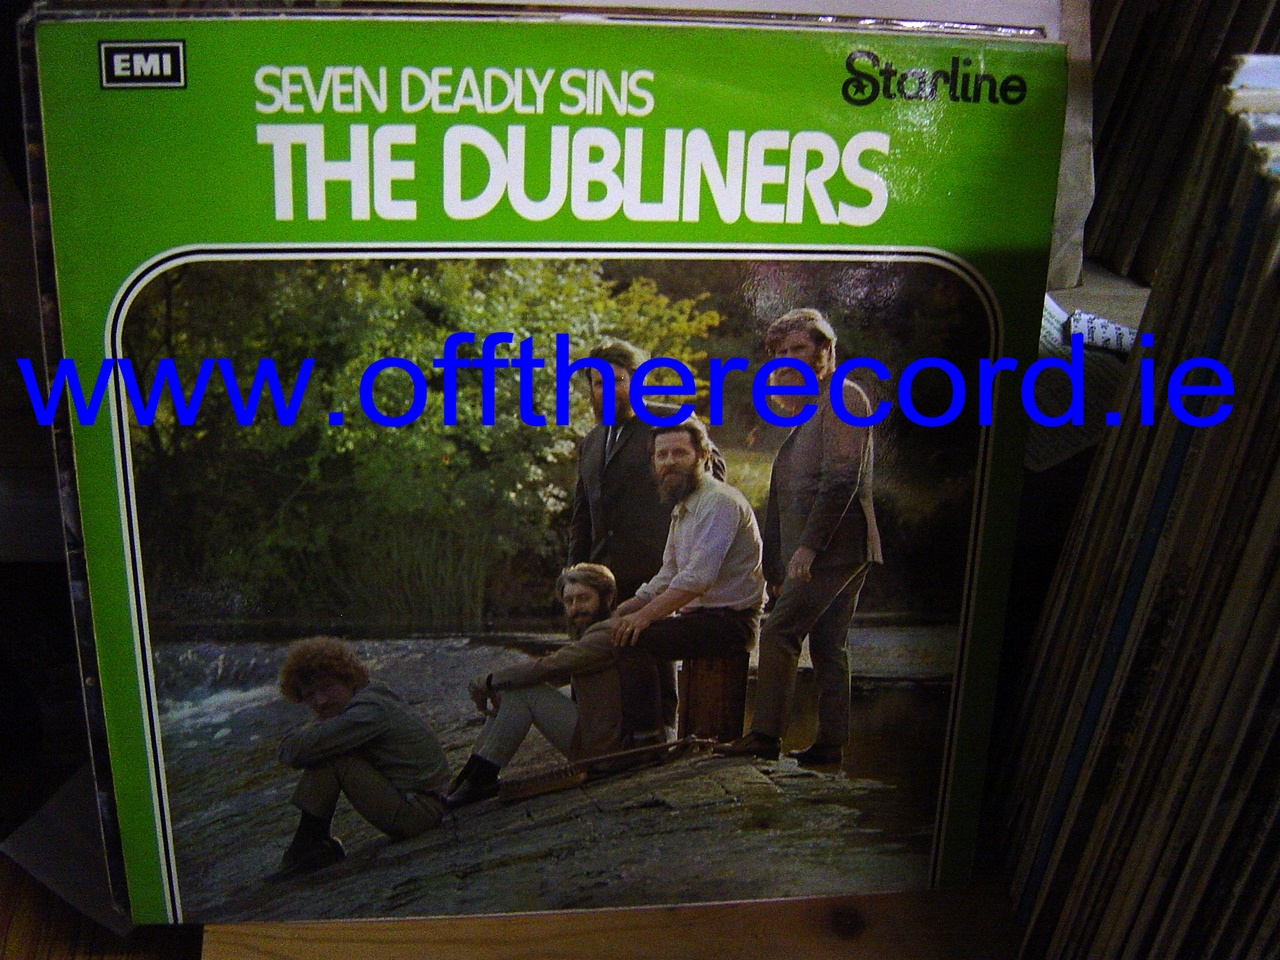 The Dubliners - Seven Deadly Sins - Starline Records